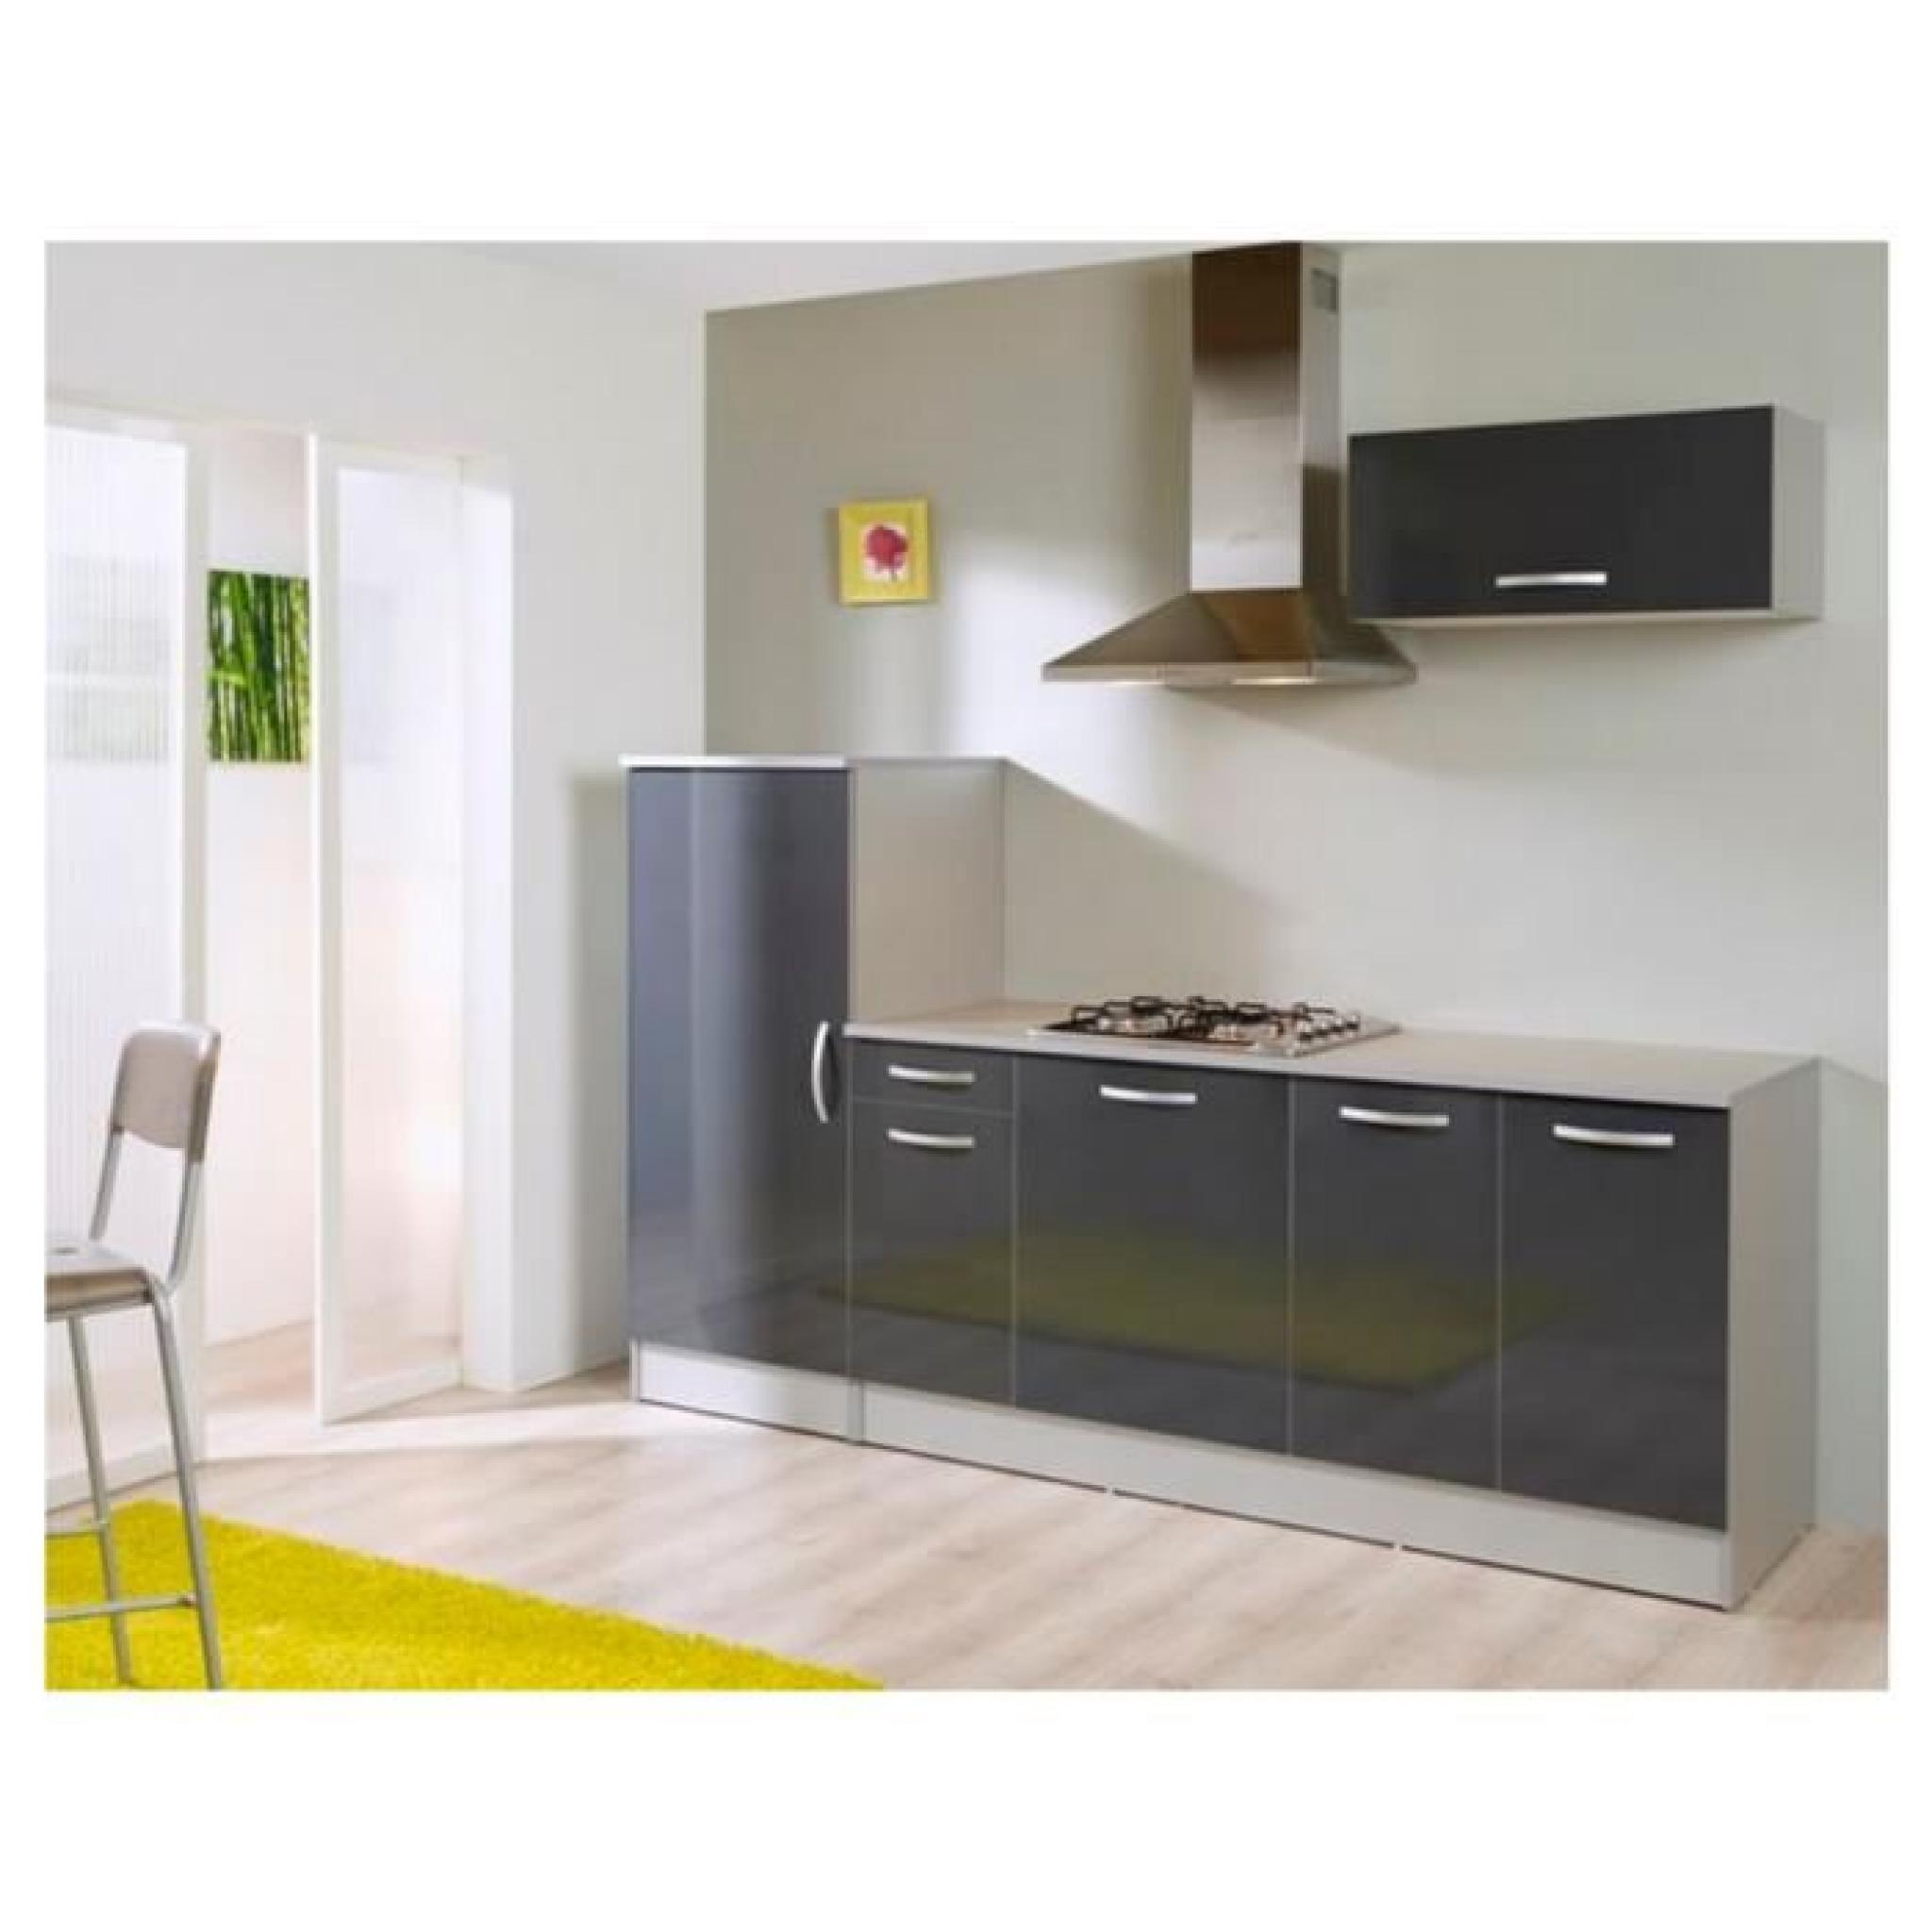 meuble cuisine complet pas cher meuble de cuisine en kit cuisine compl te d 39 angle oxane. Black Bedroom Furniture Sets. Home Design Ideas